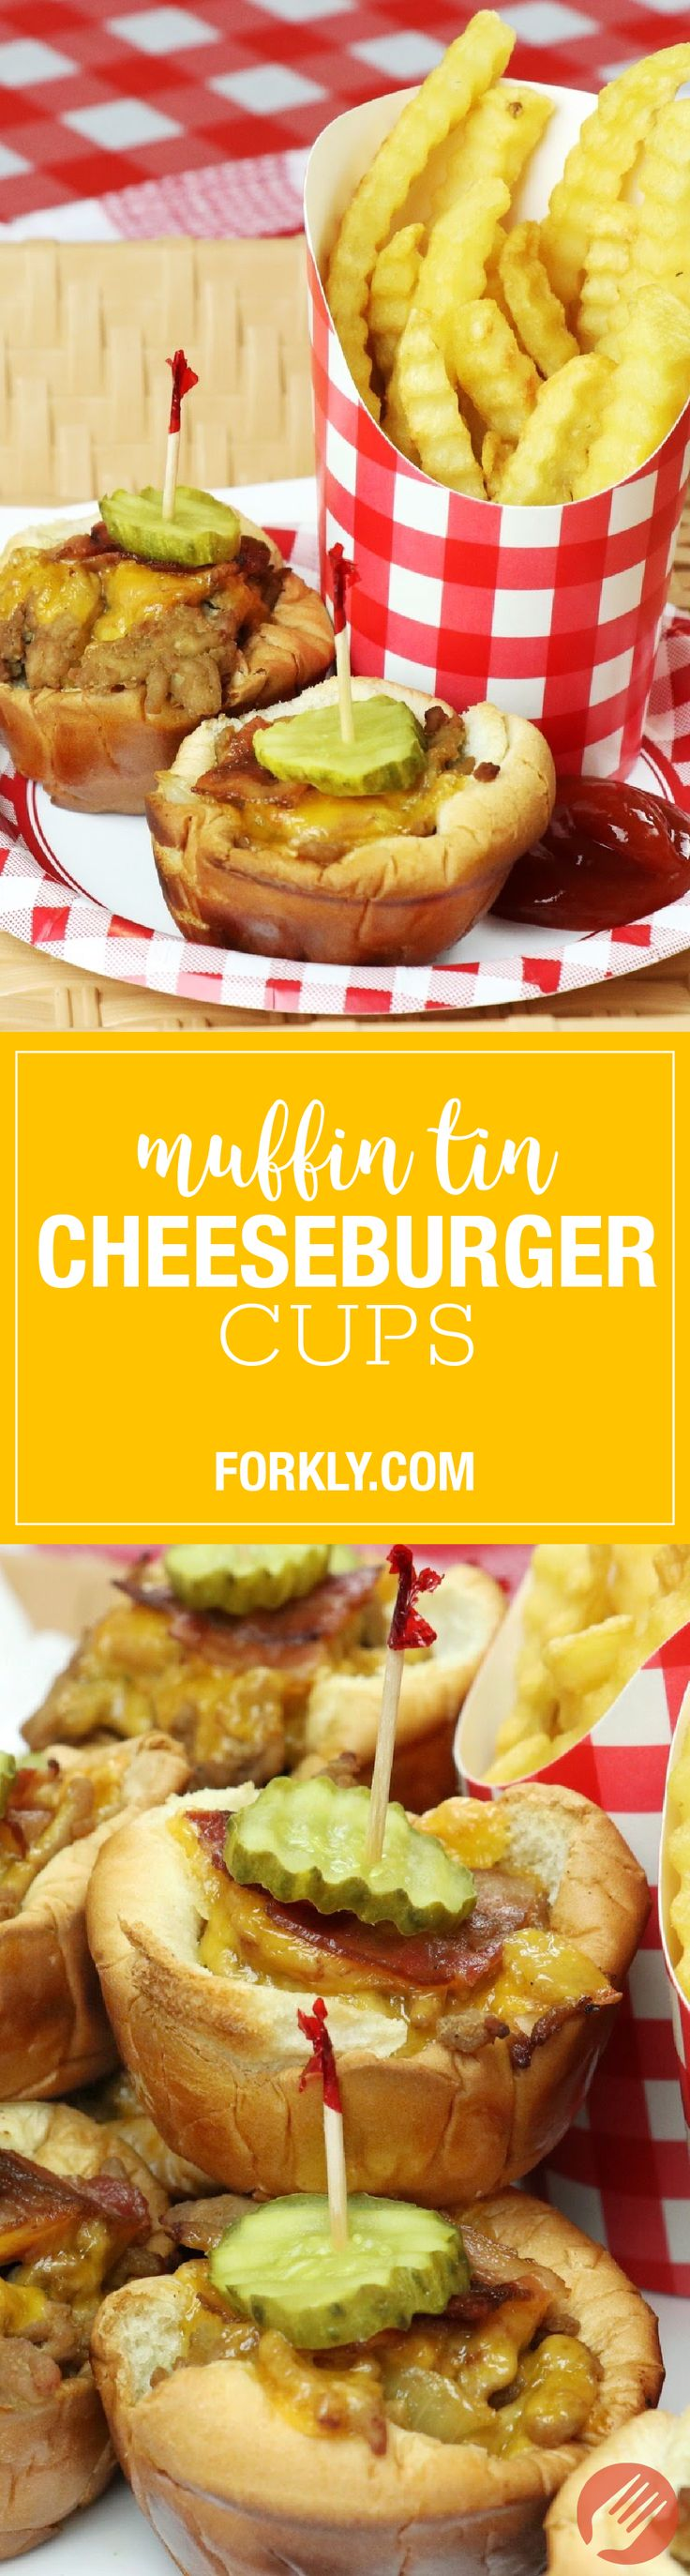 Muffin Tin Cheeseburger Cups : The e asy to share burger recipe that's perfect for football watching and party appetizers that will make everyone happy!